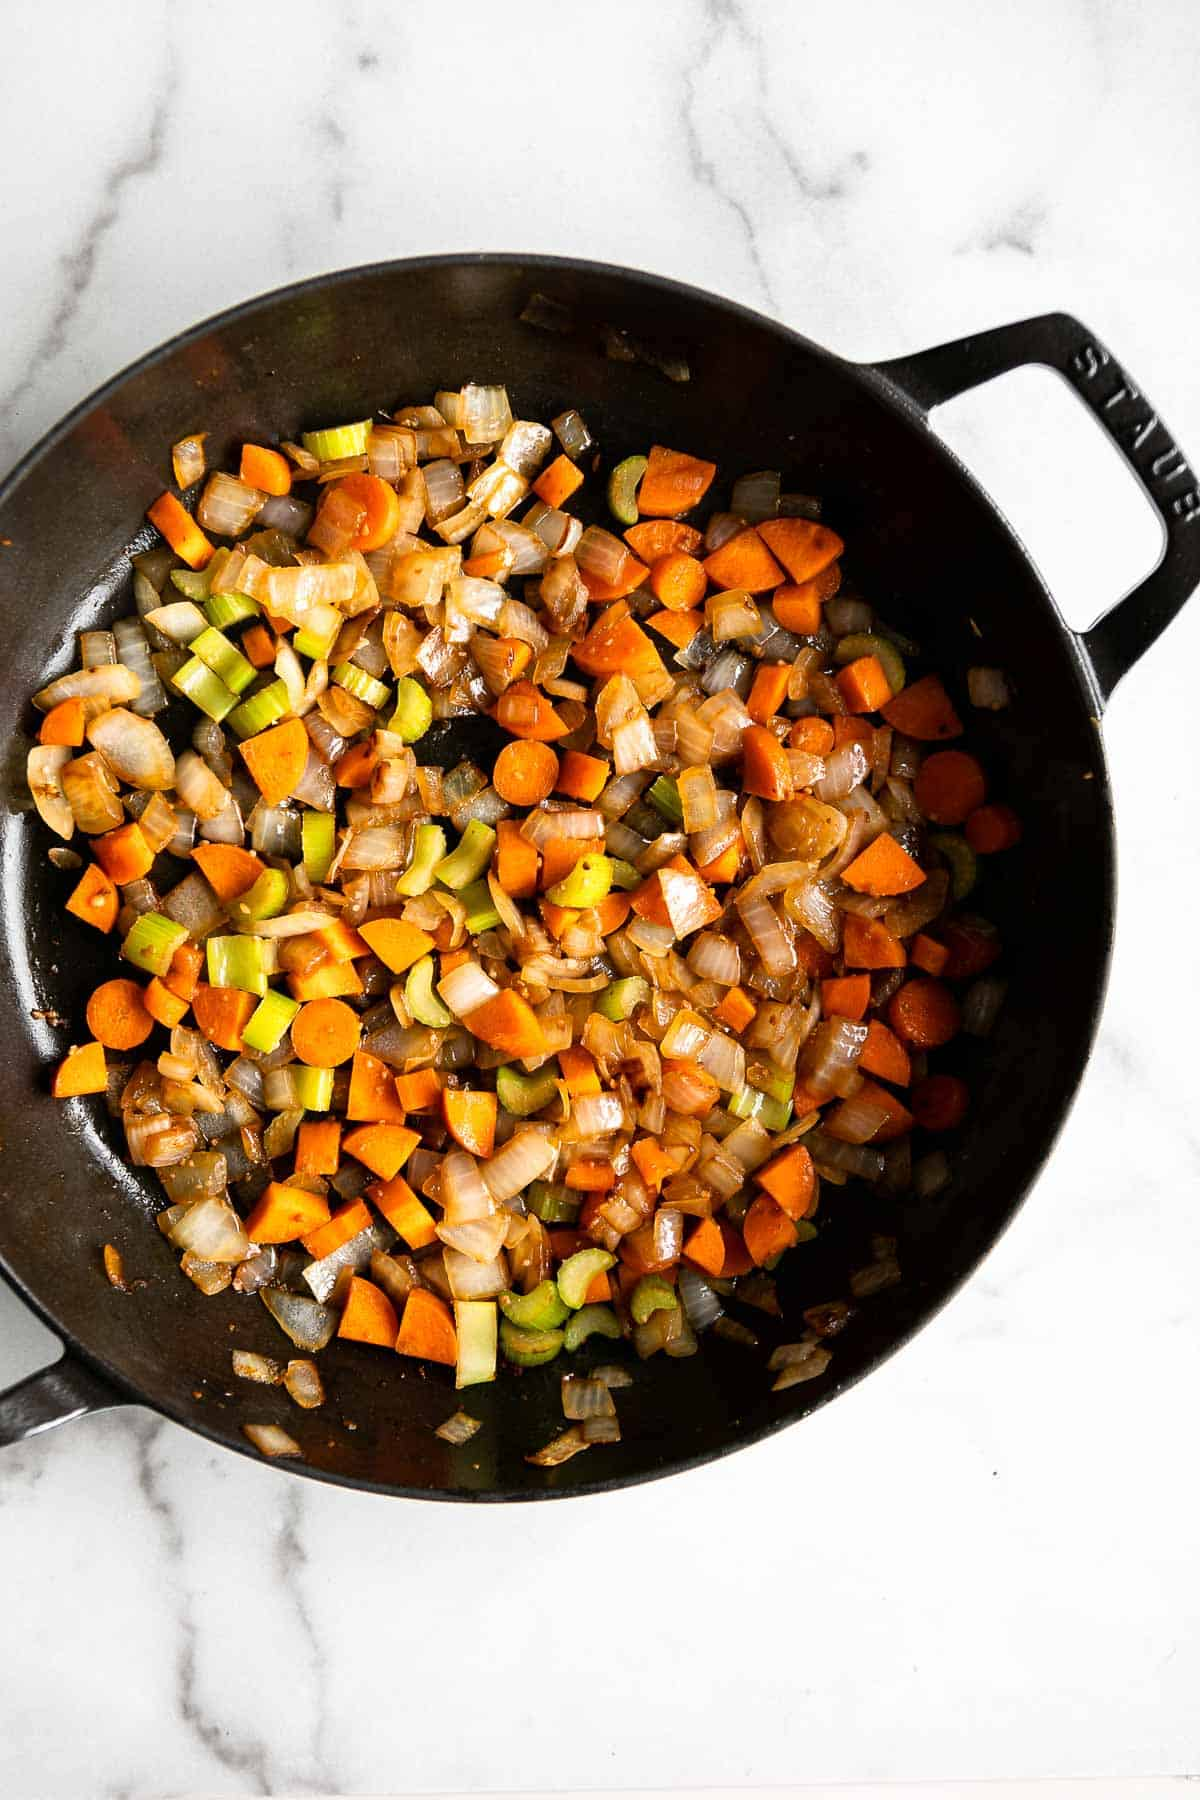 sauteing the carrots for the sauce